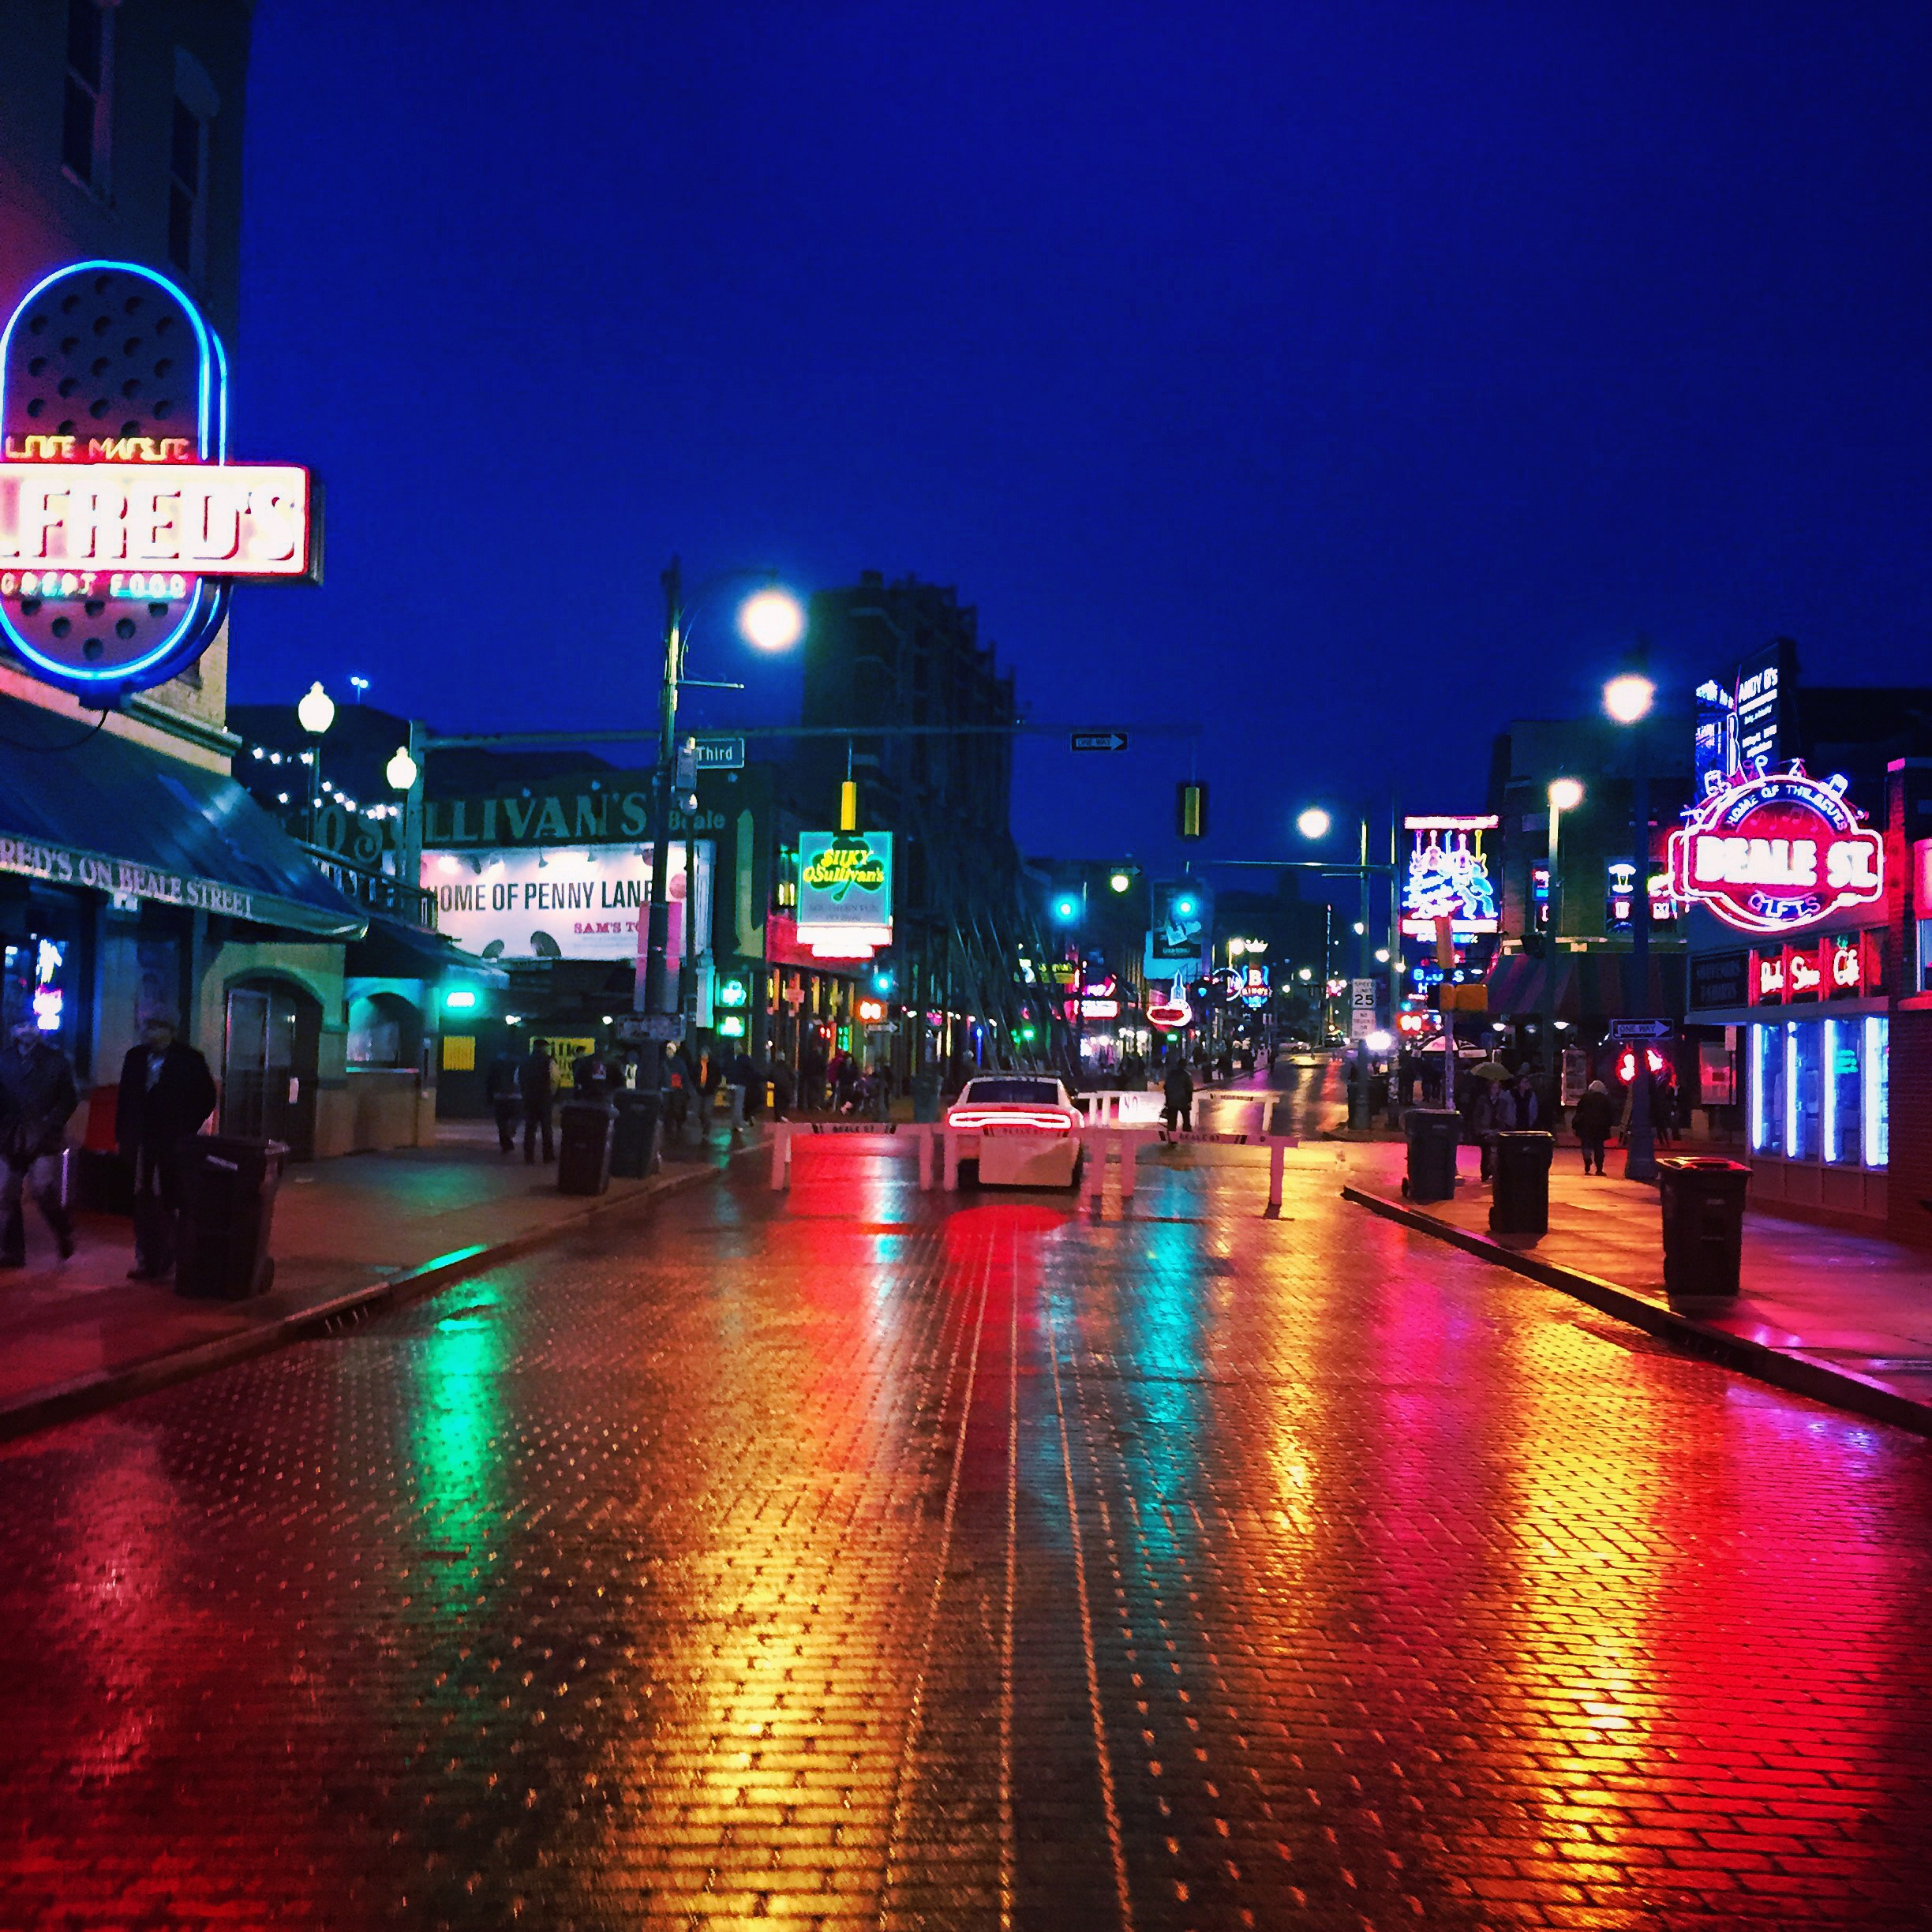 Beale Street after the rain. This seems to be  Steve Mack's  favorite, who I didn't seem to get a photo with so I'll link him  here . Steve is one of the nicest people I think I've ever met, and also a talented photographer!